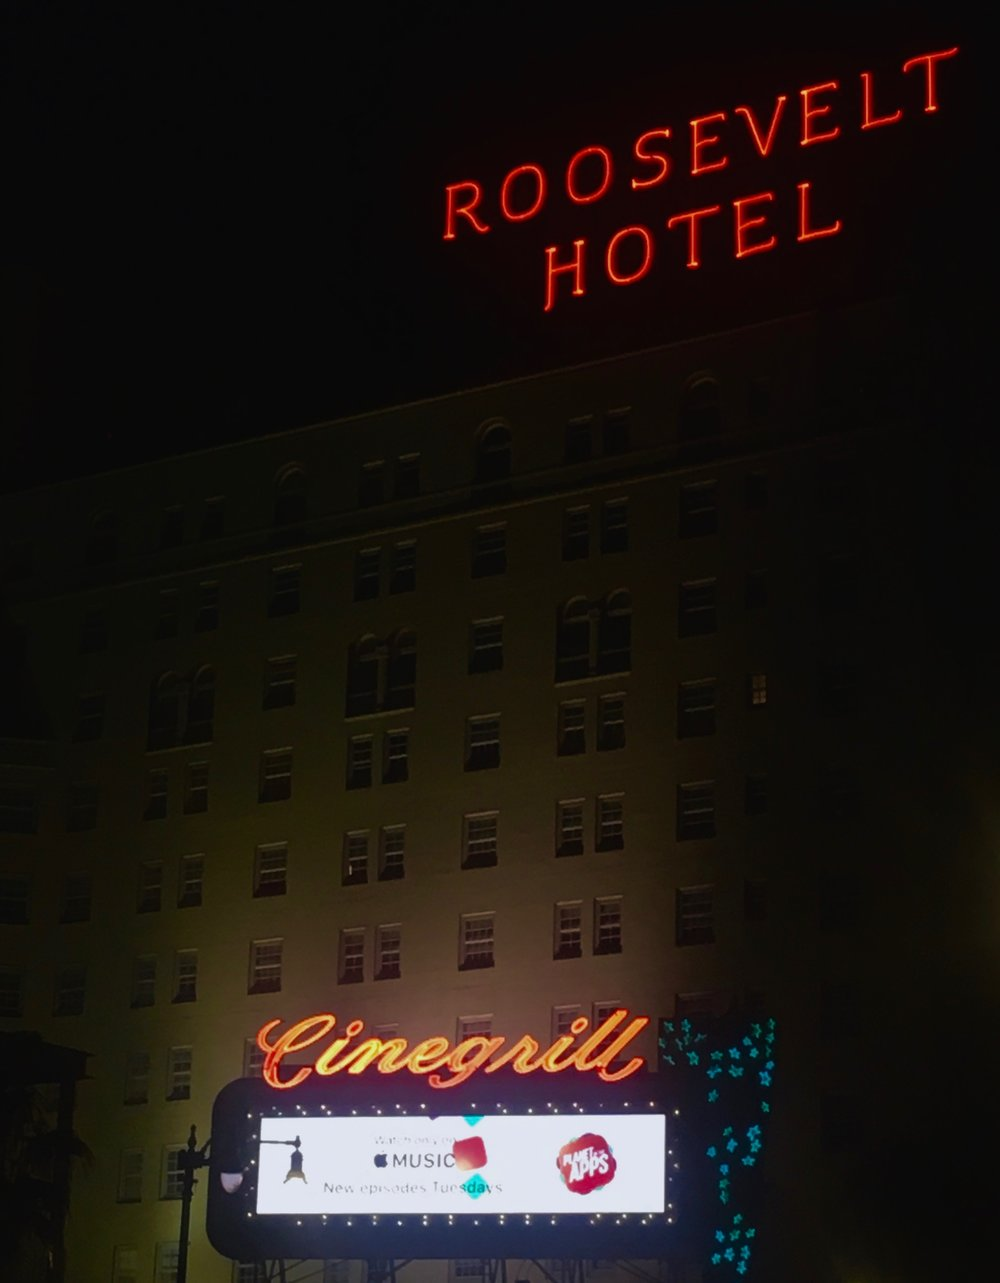 The Hollywood Roosevelt at night (photo by Meghan Ianiro)